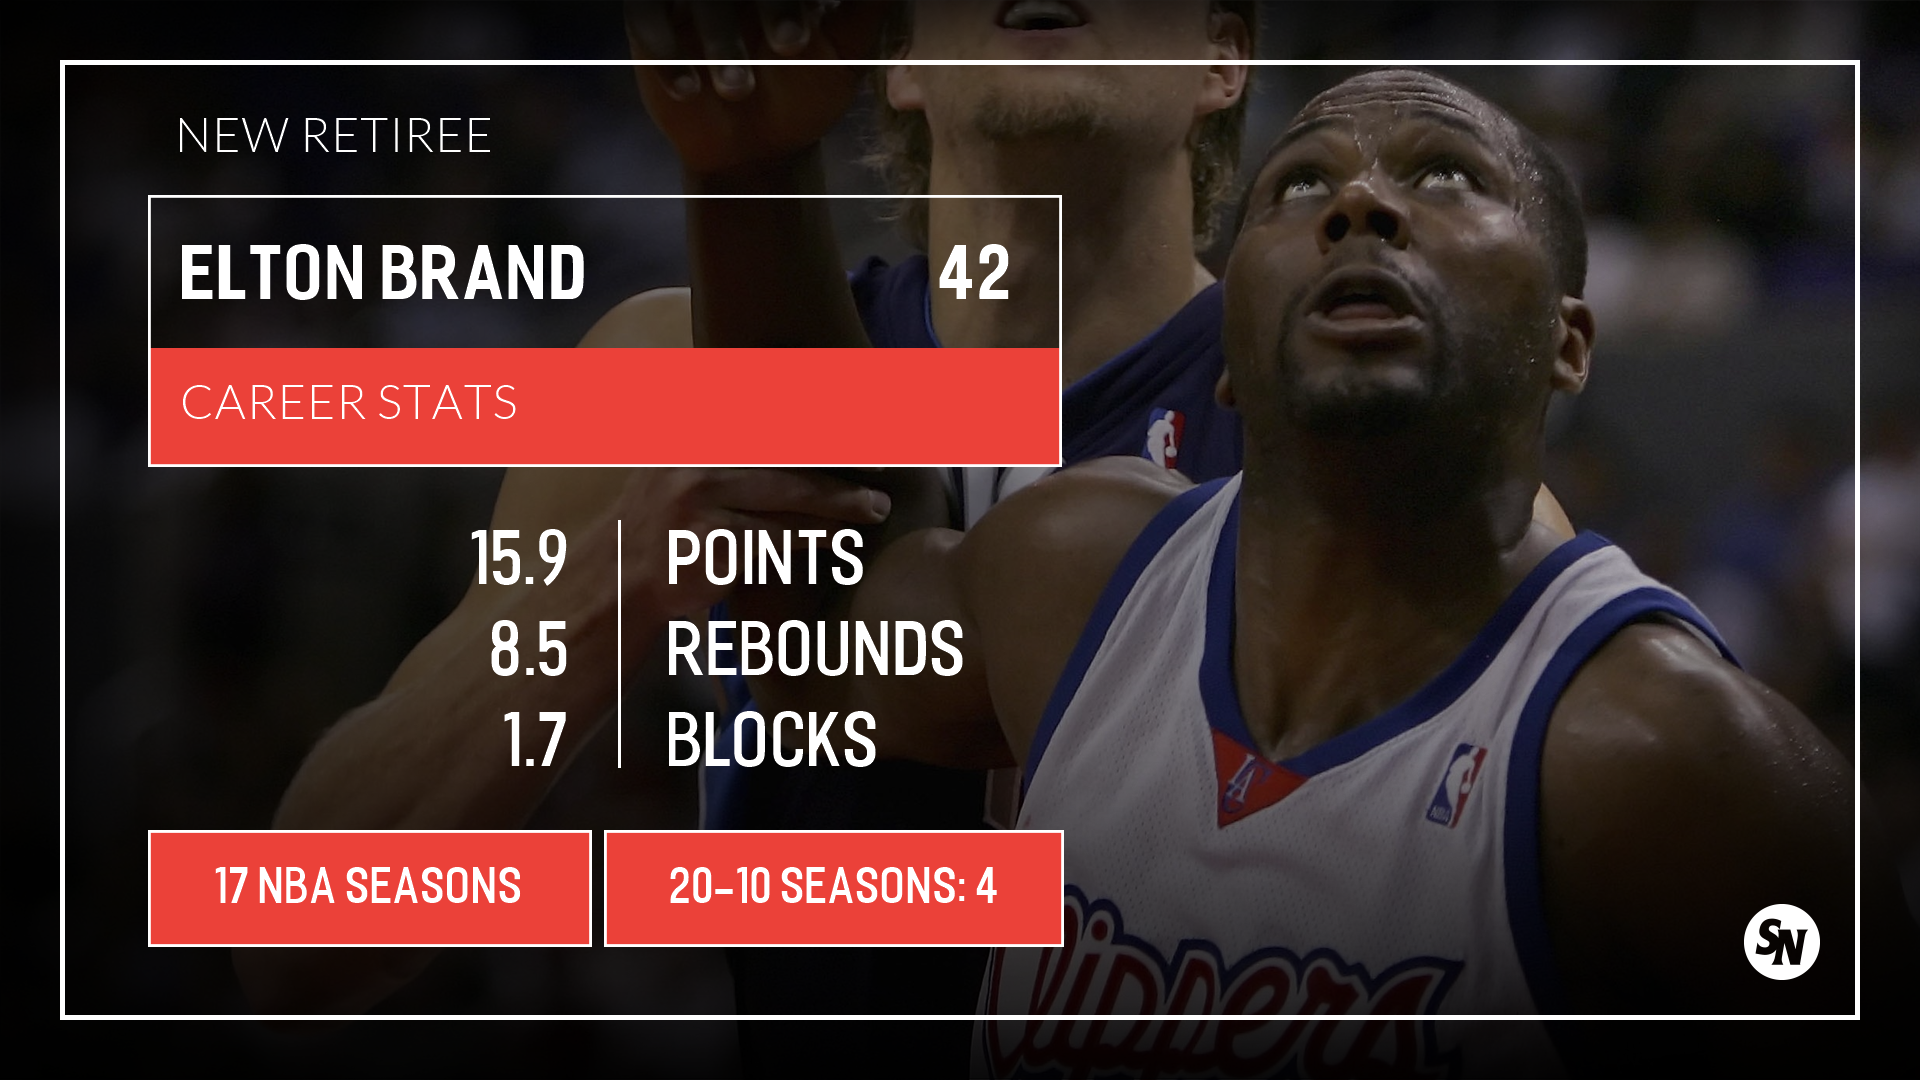 Appreciate Elton Brand for doing things rarely seen for a player